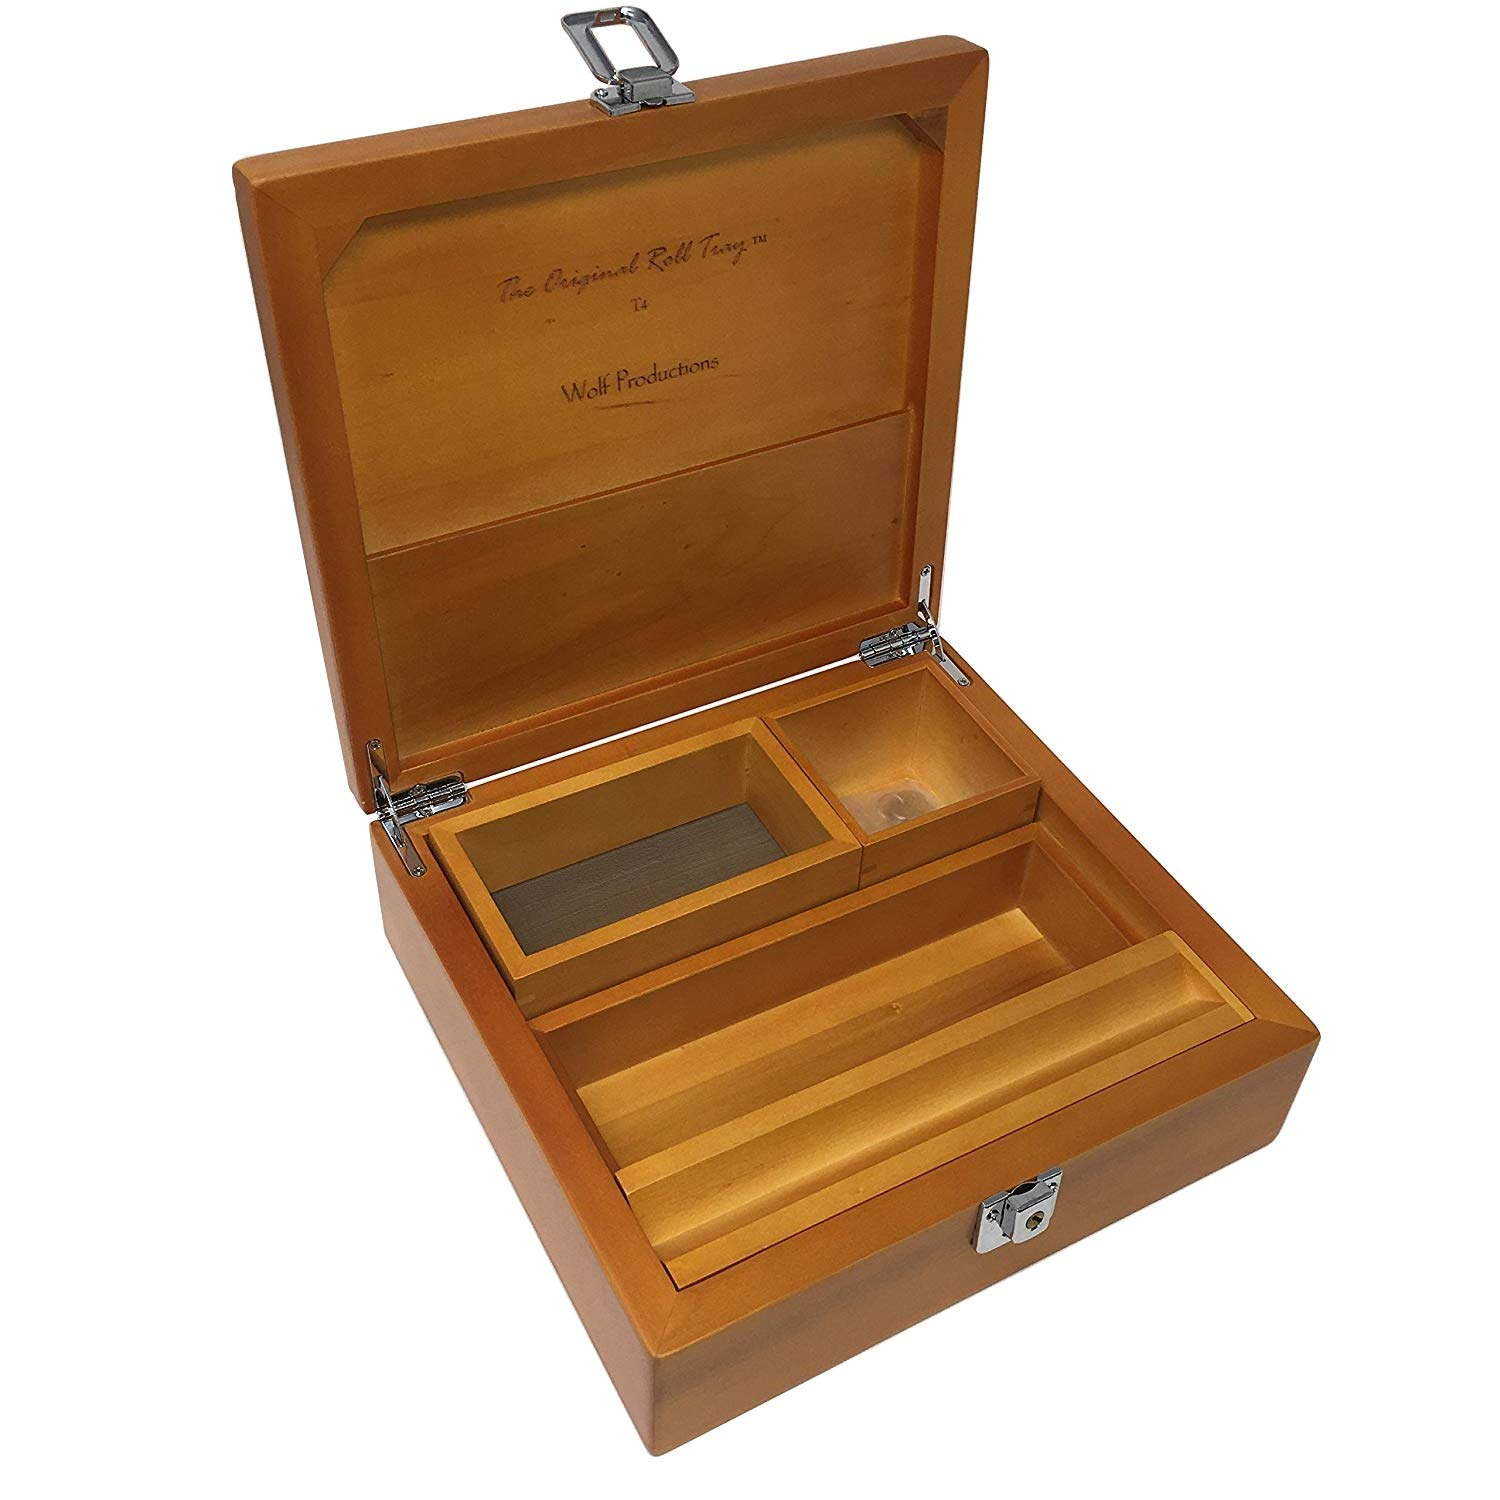 T4 Deluxe Holzbox mit Schloss Wolf Productions Deluxe Jointbox